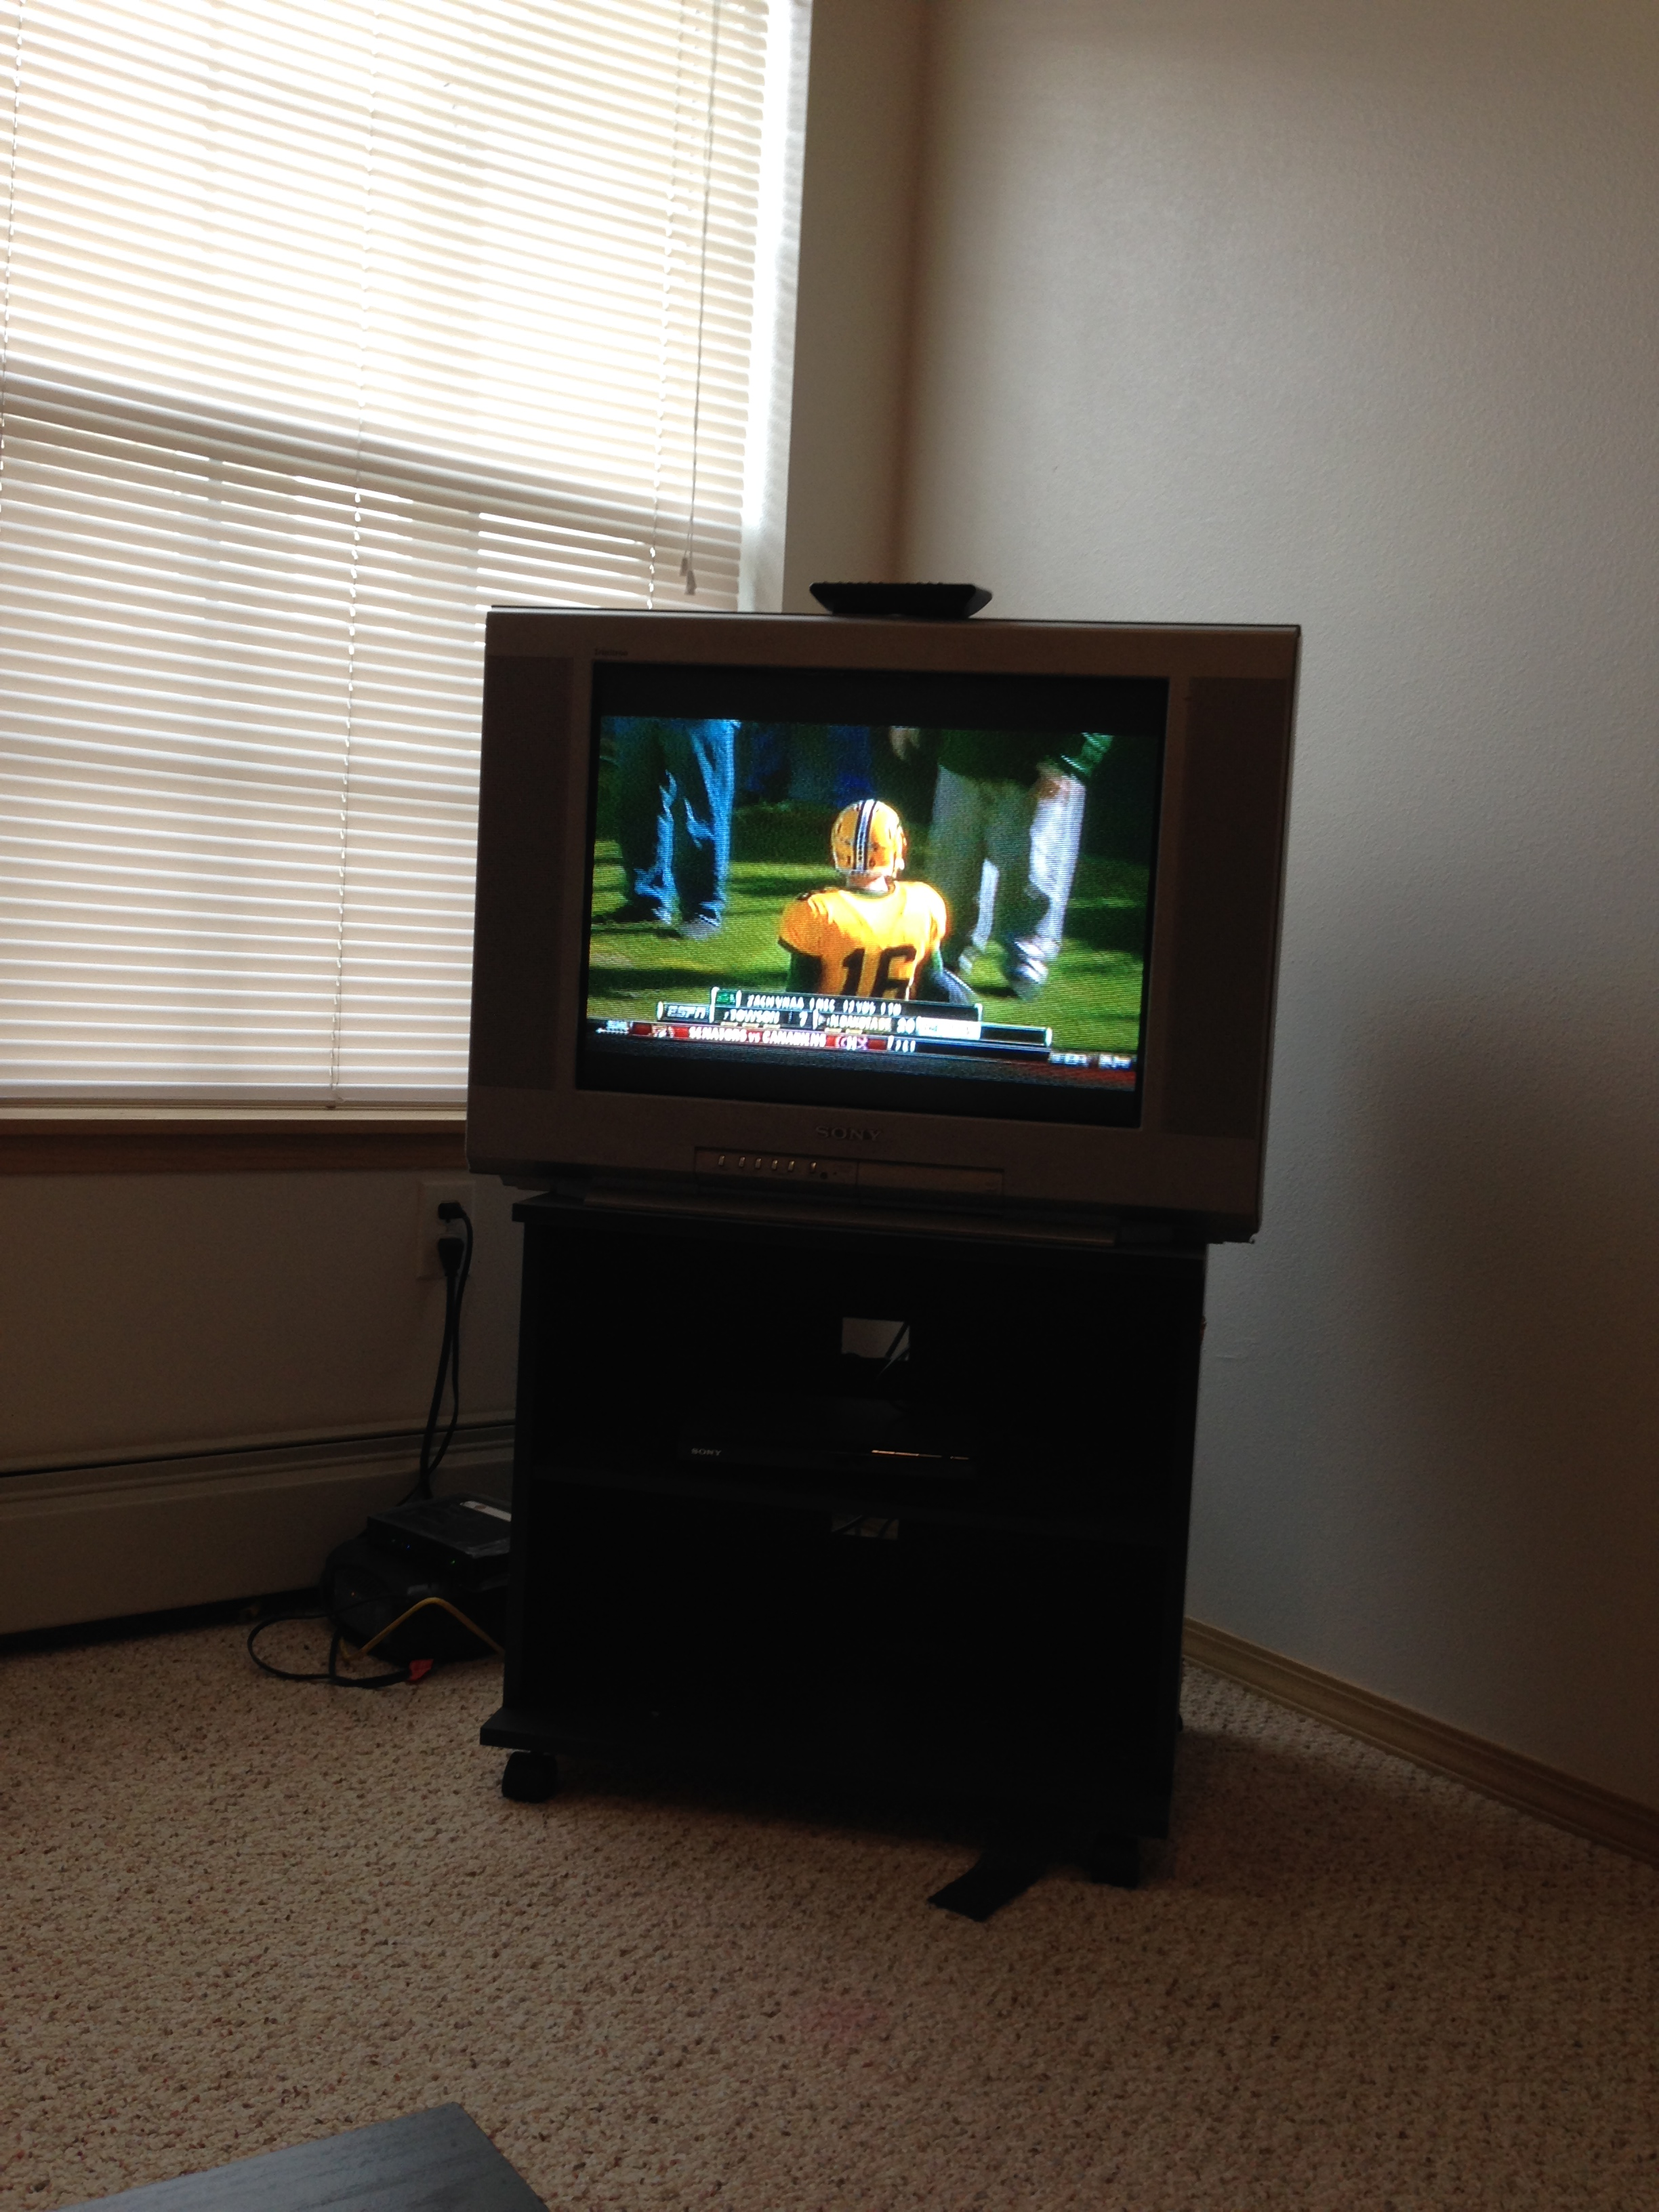 Here is my famous Sony Trinitron television set I have owned for over seven years.